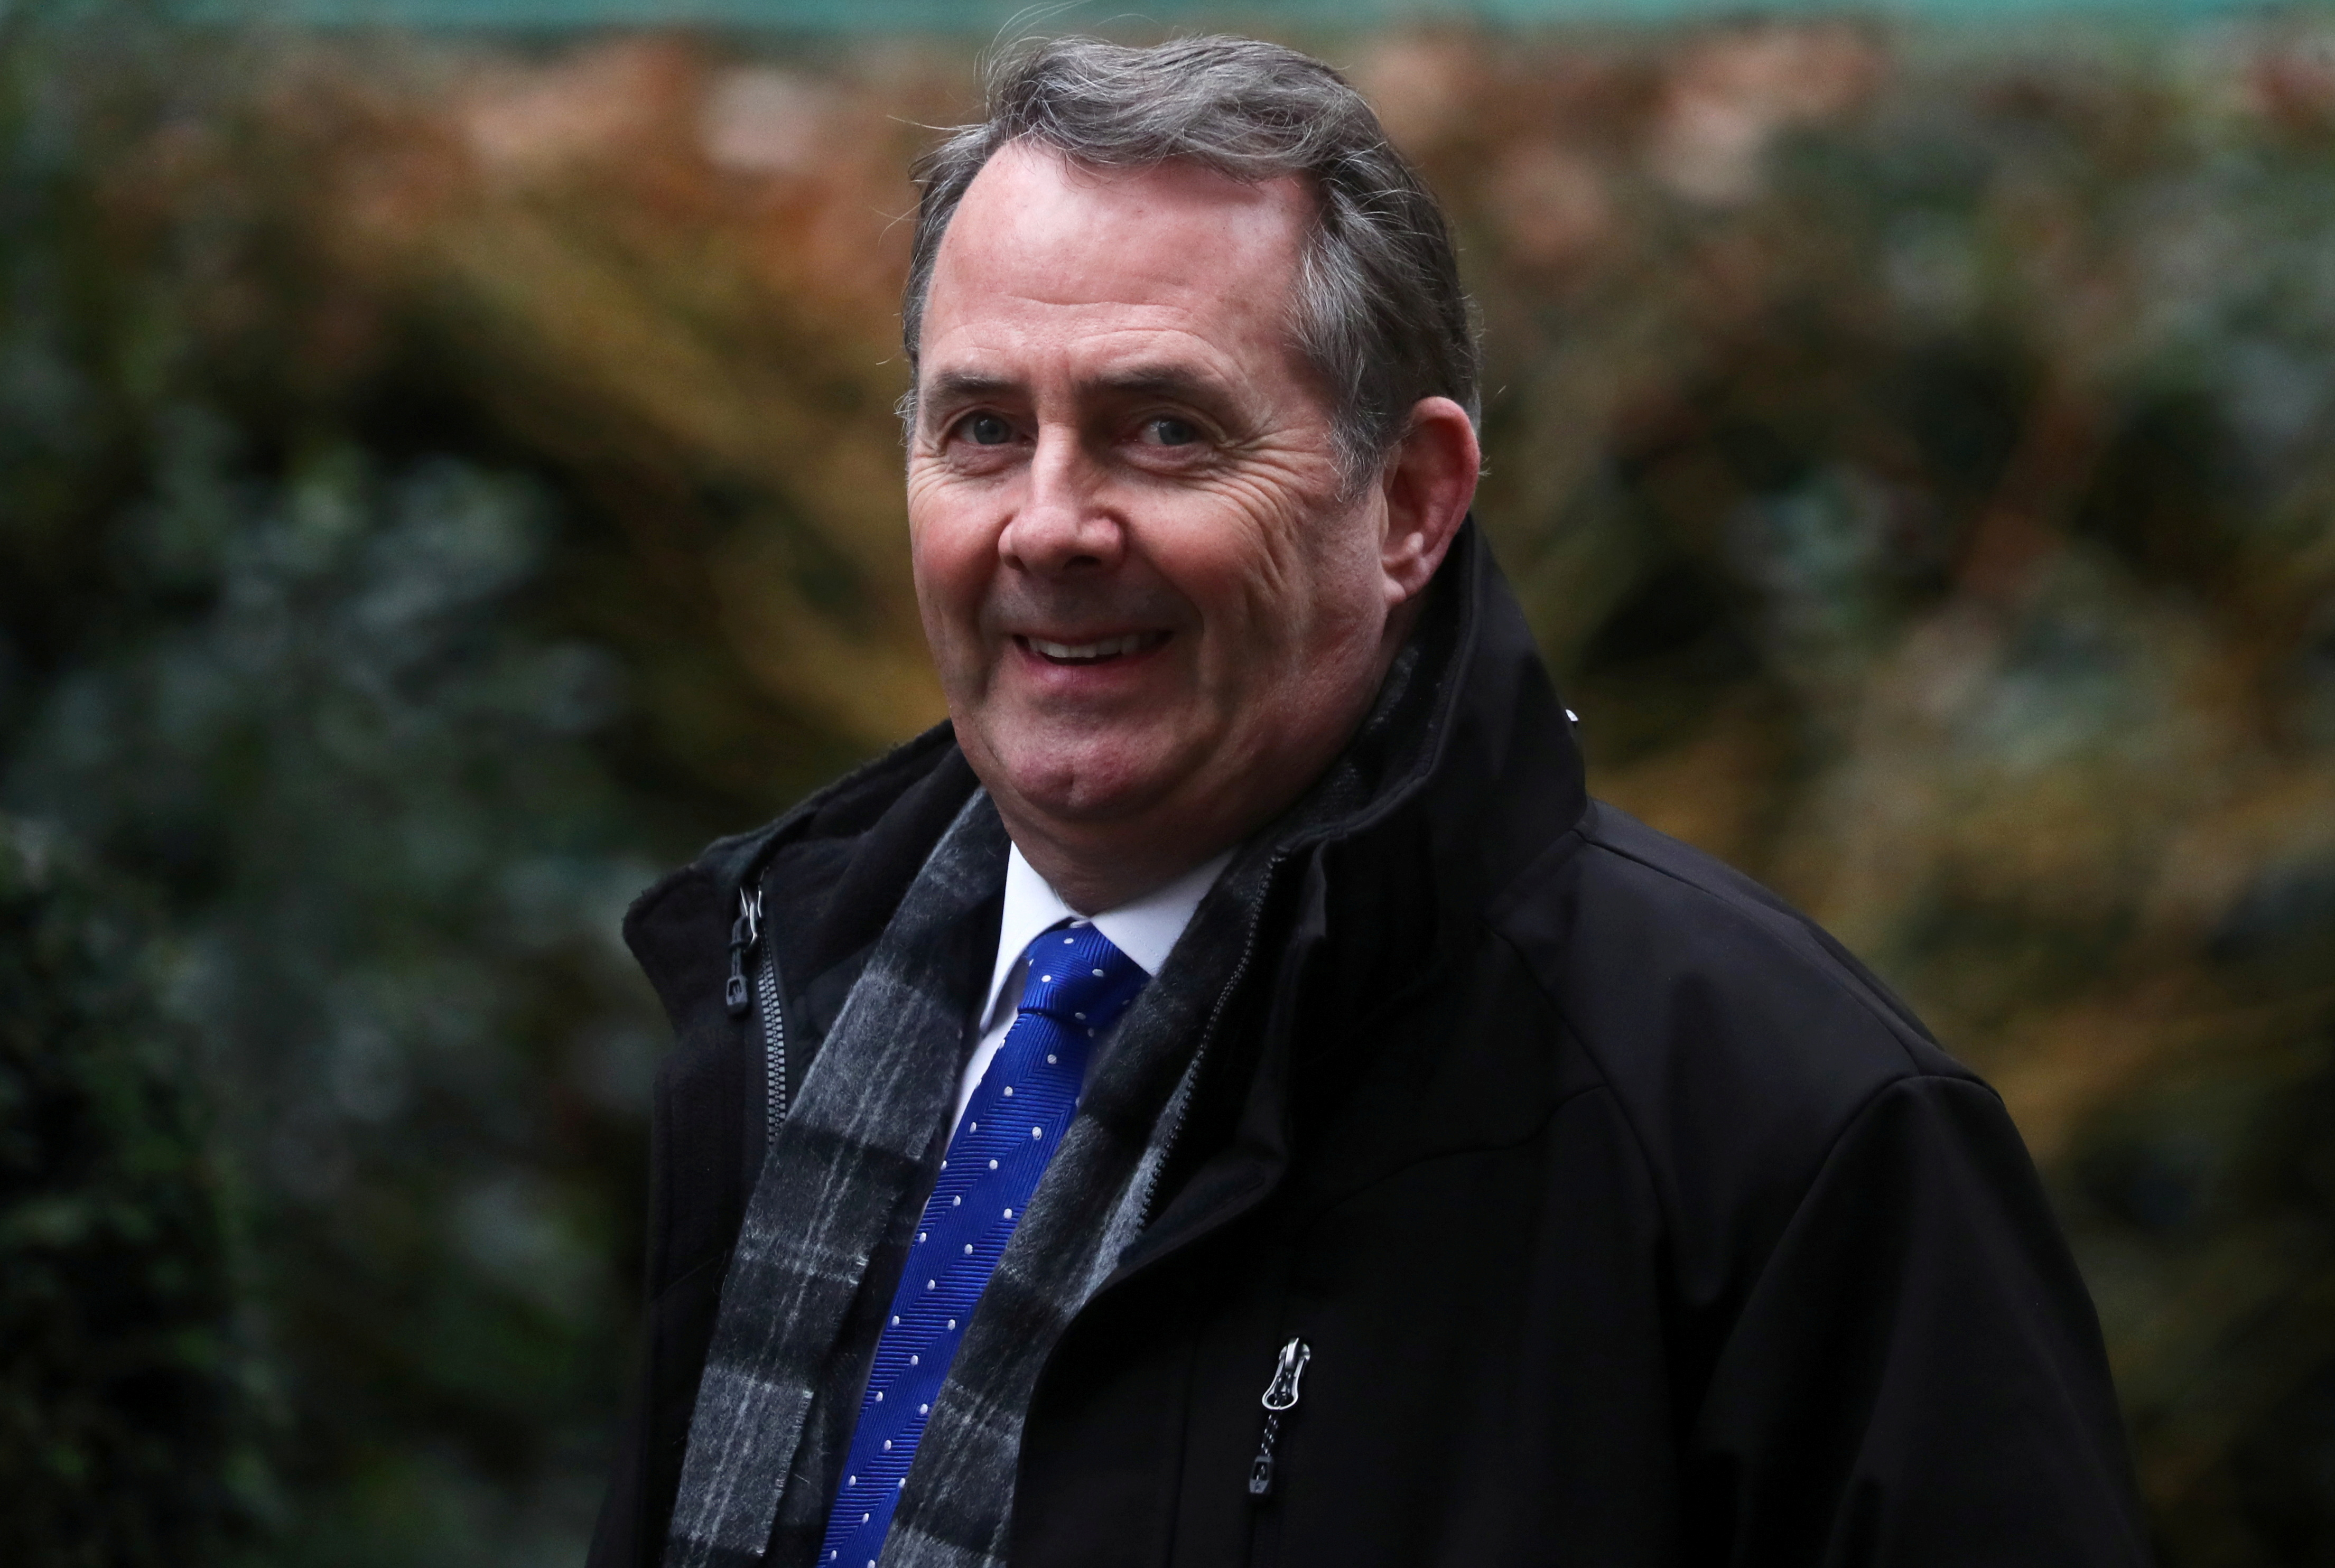 Liam Foxis seen outside Downing Street in London, Britain January 30, 2020. REUTERS/Simon Dawson/File Photo